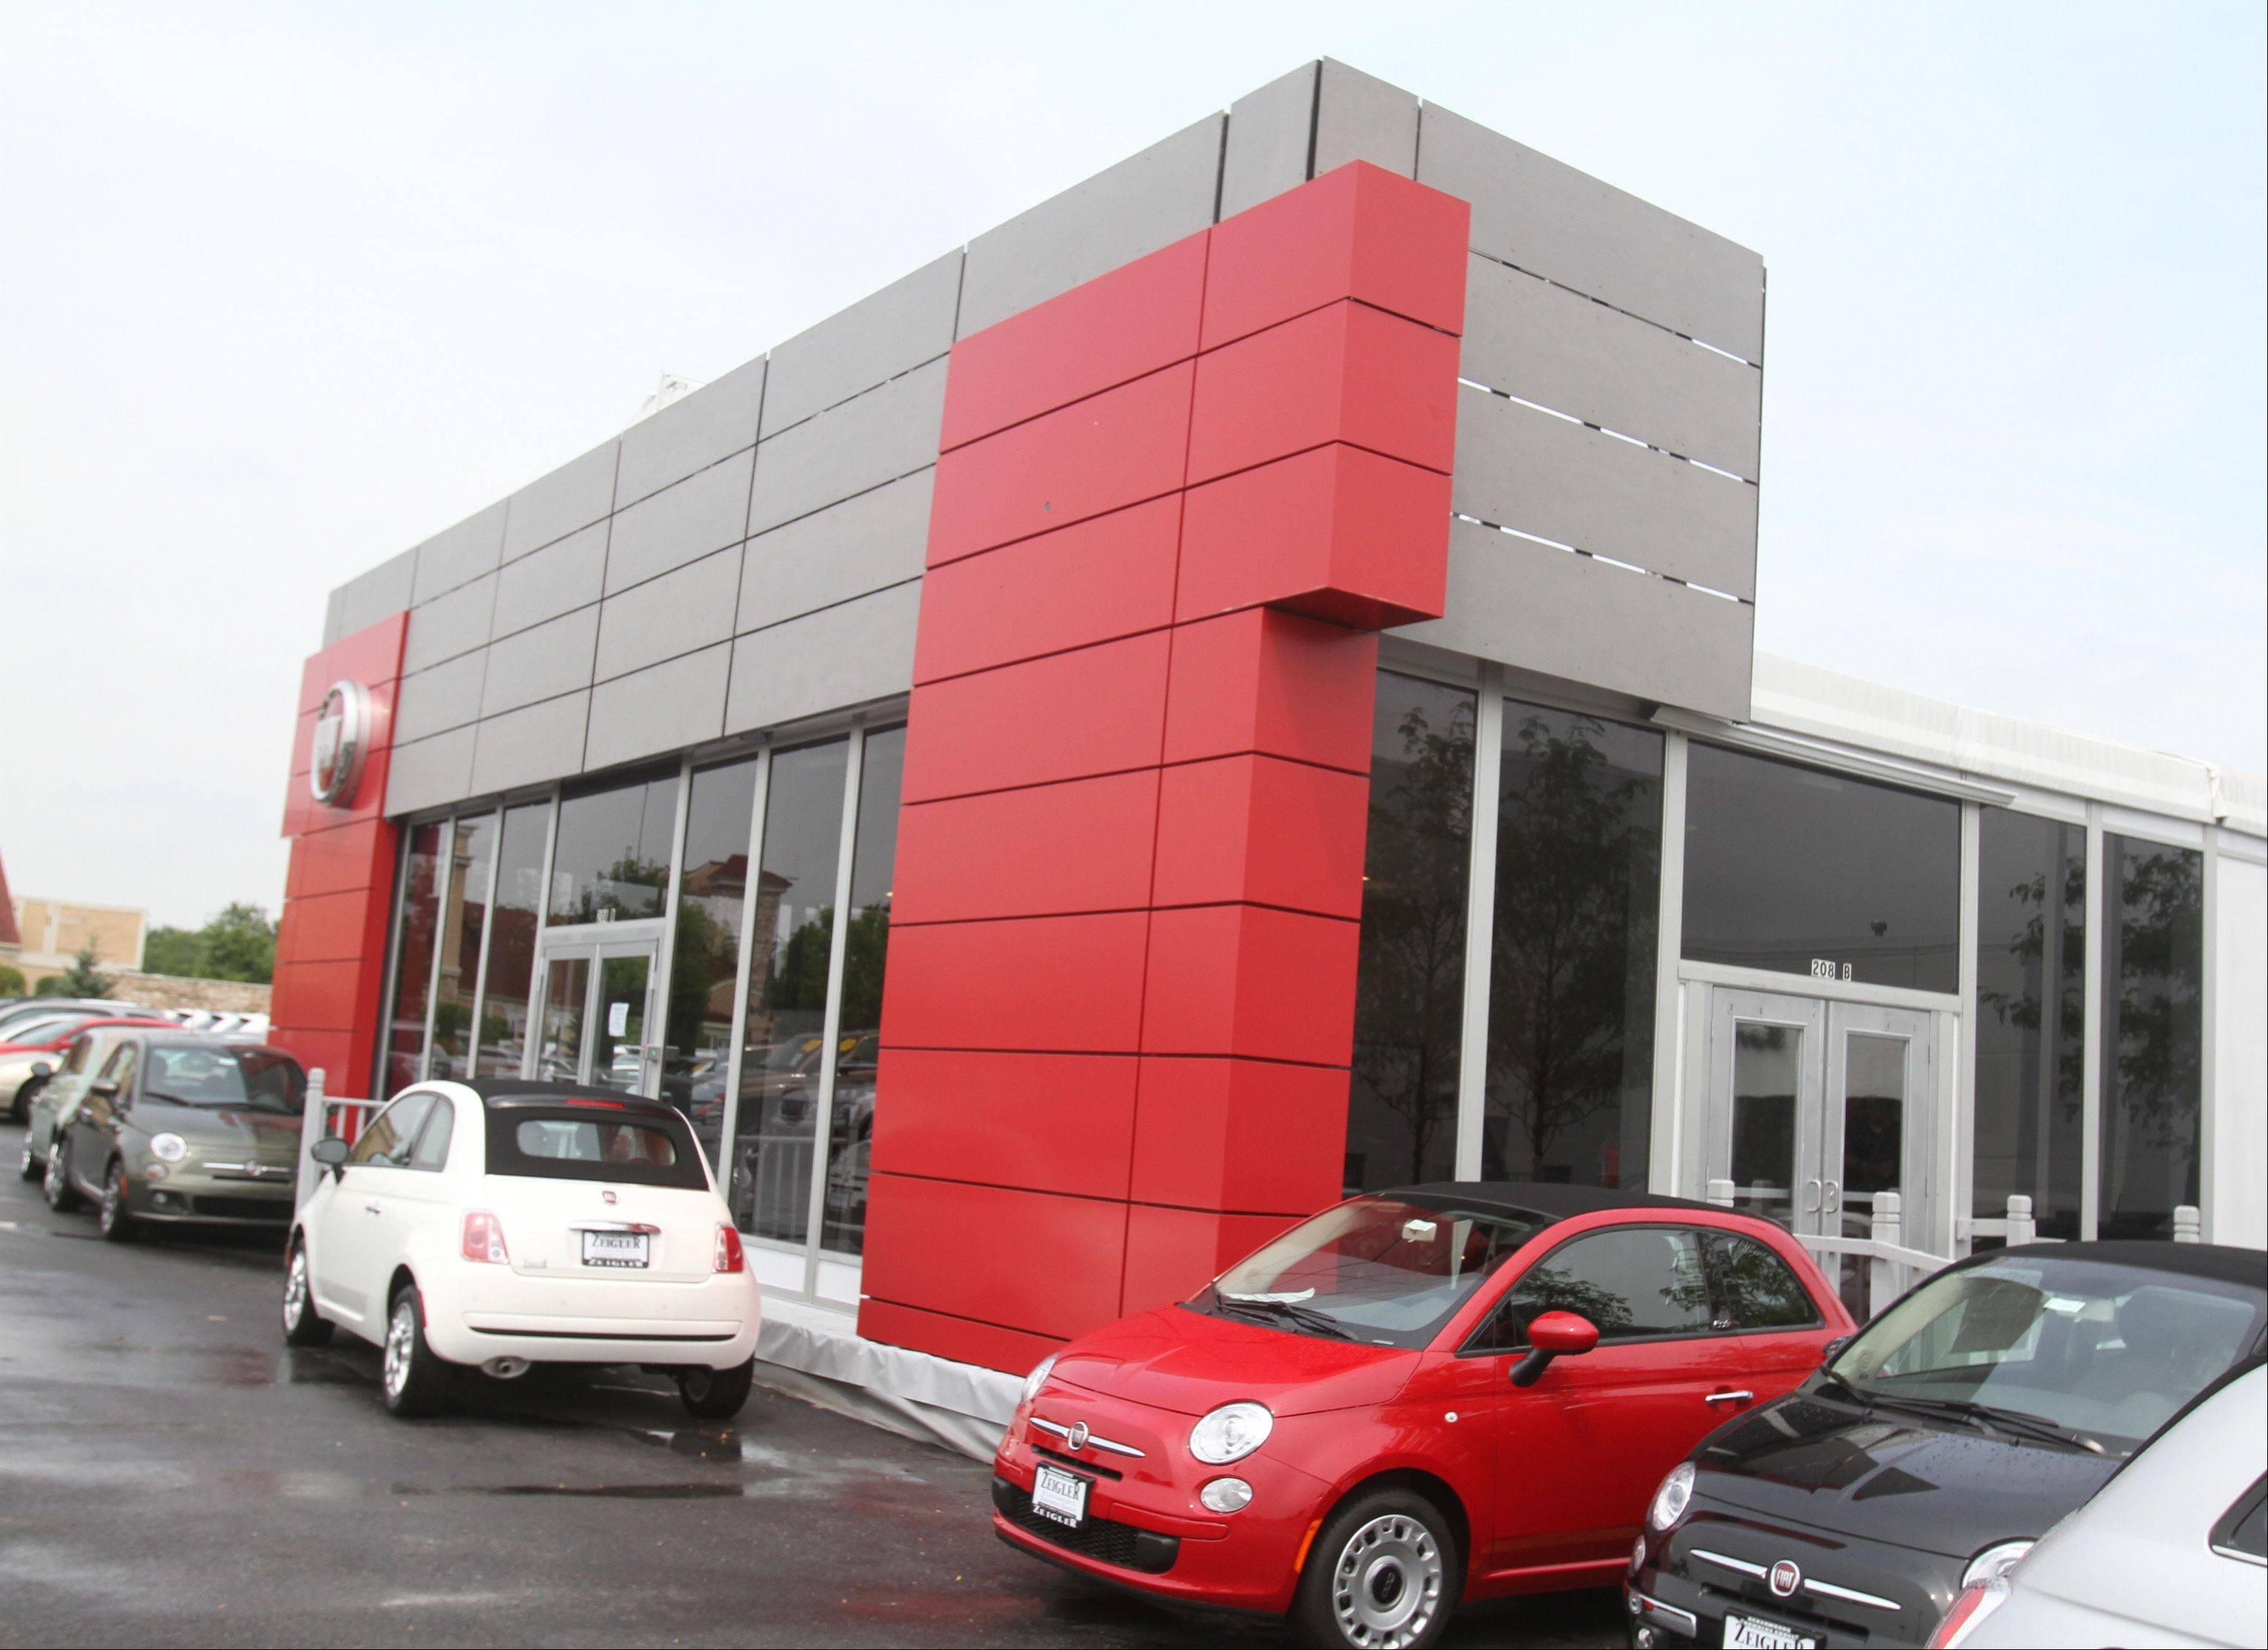 Zeigler Chrysler Dodge Jeep has opened a temporary Fiat showroom at its existing dealership on Golf Road in Schaumburg while it searches for a permanent location nearby.